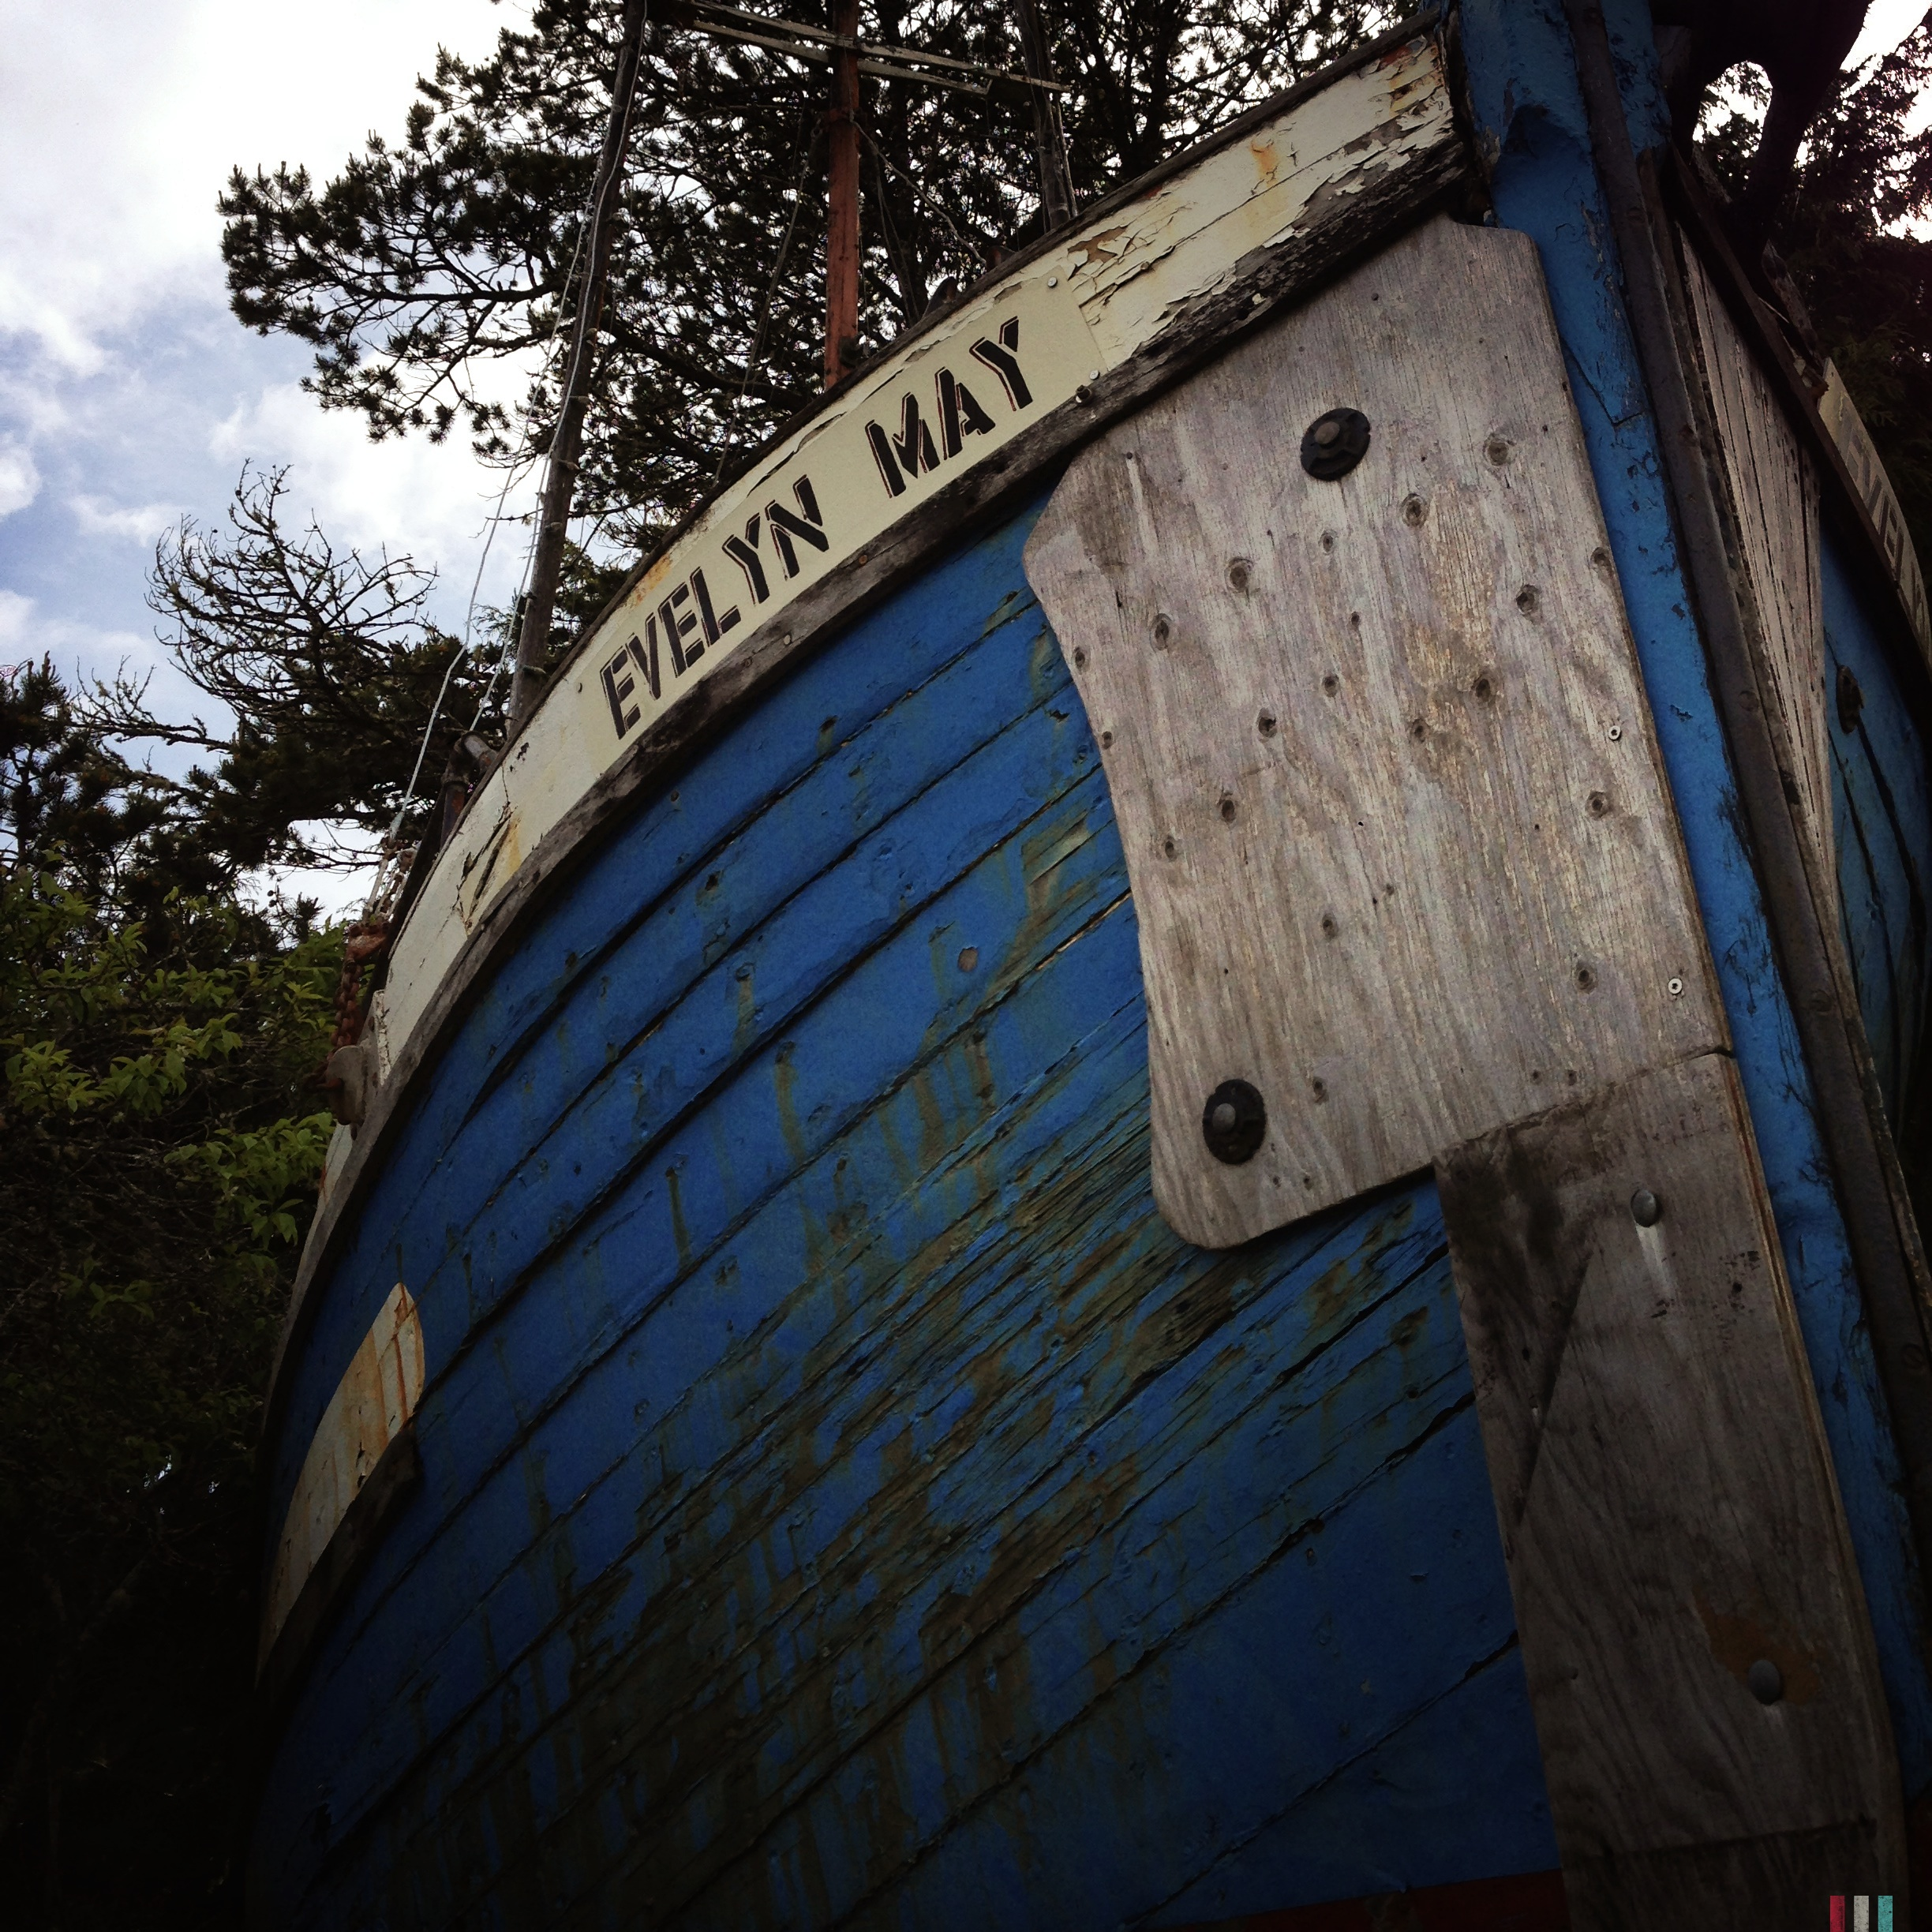 evelyn may, ucluelet